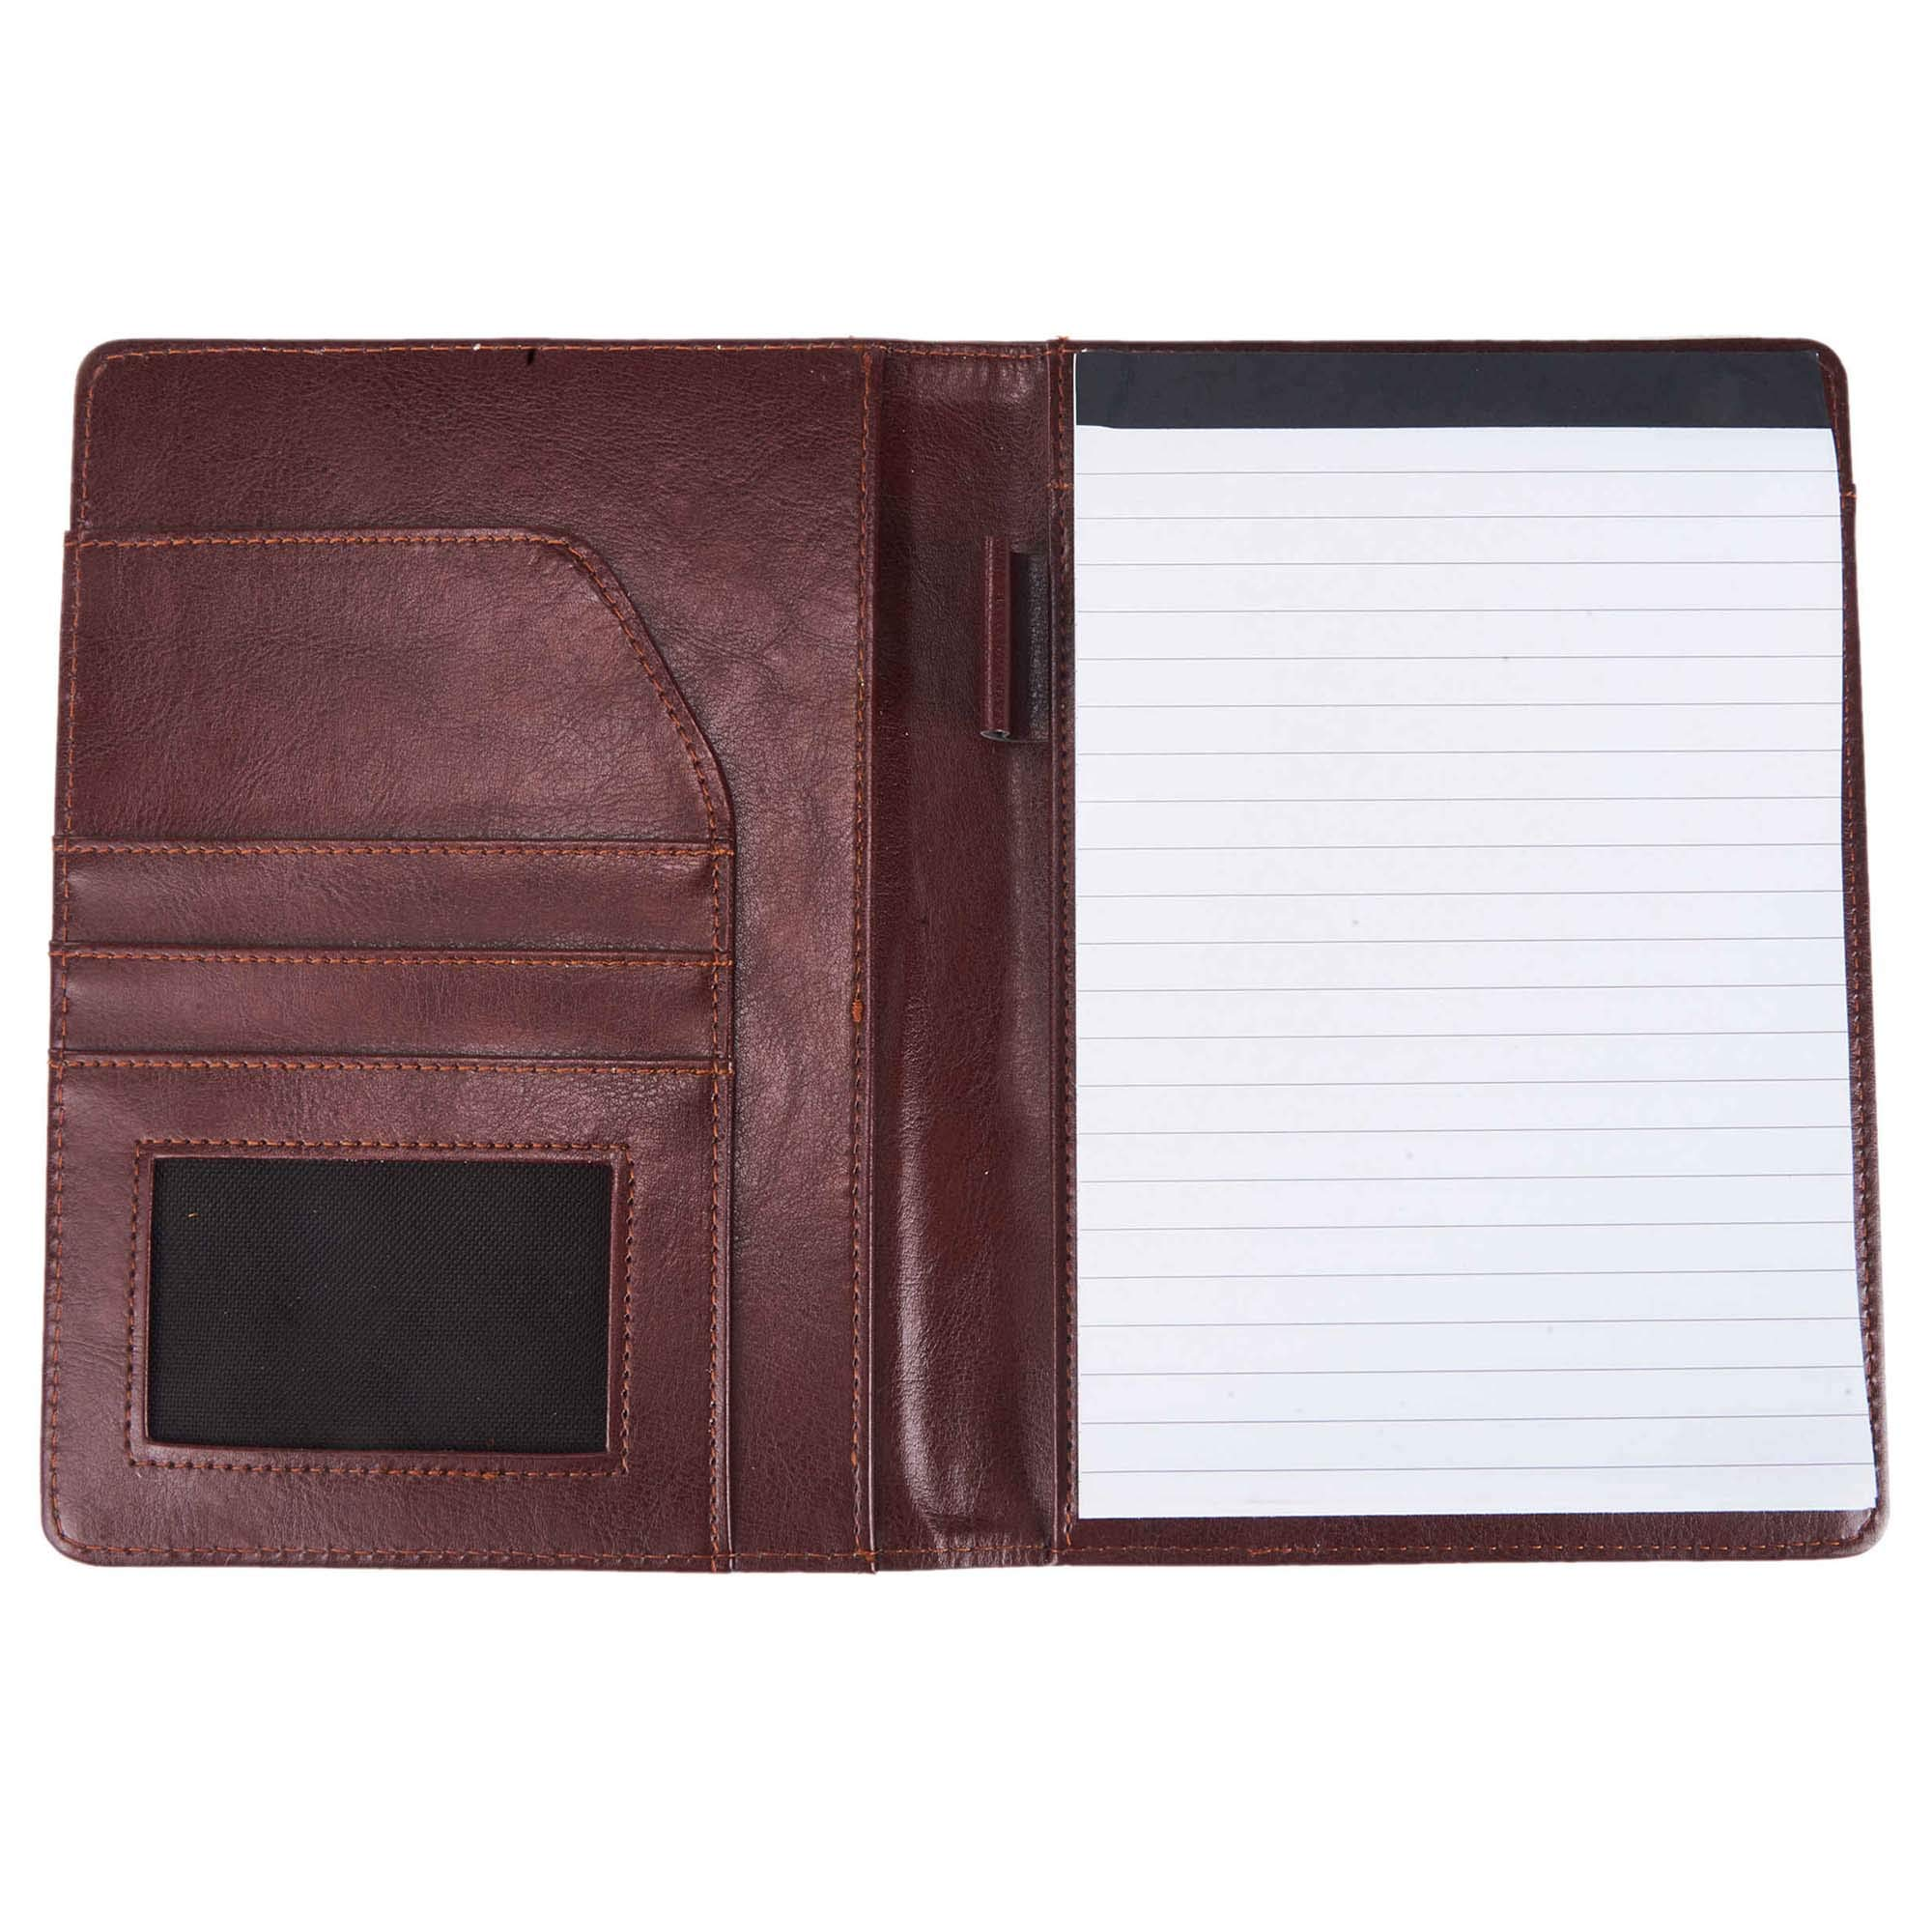 Professional PU Leather Notebook Personal Organizer Folder A5 Size Memo Junior Padfolio Business Portfolio with Writing Pad Pen Holder For School Office (Brown)